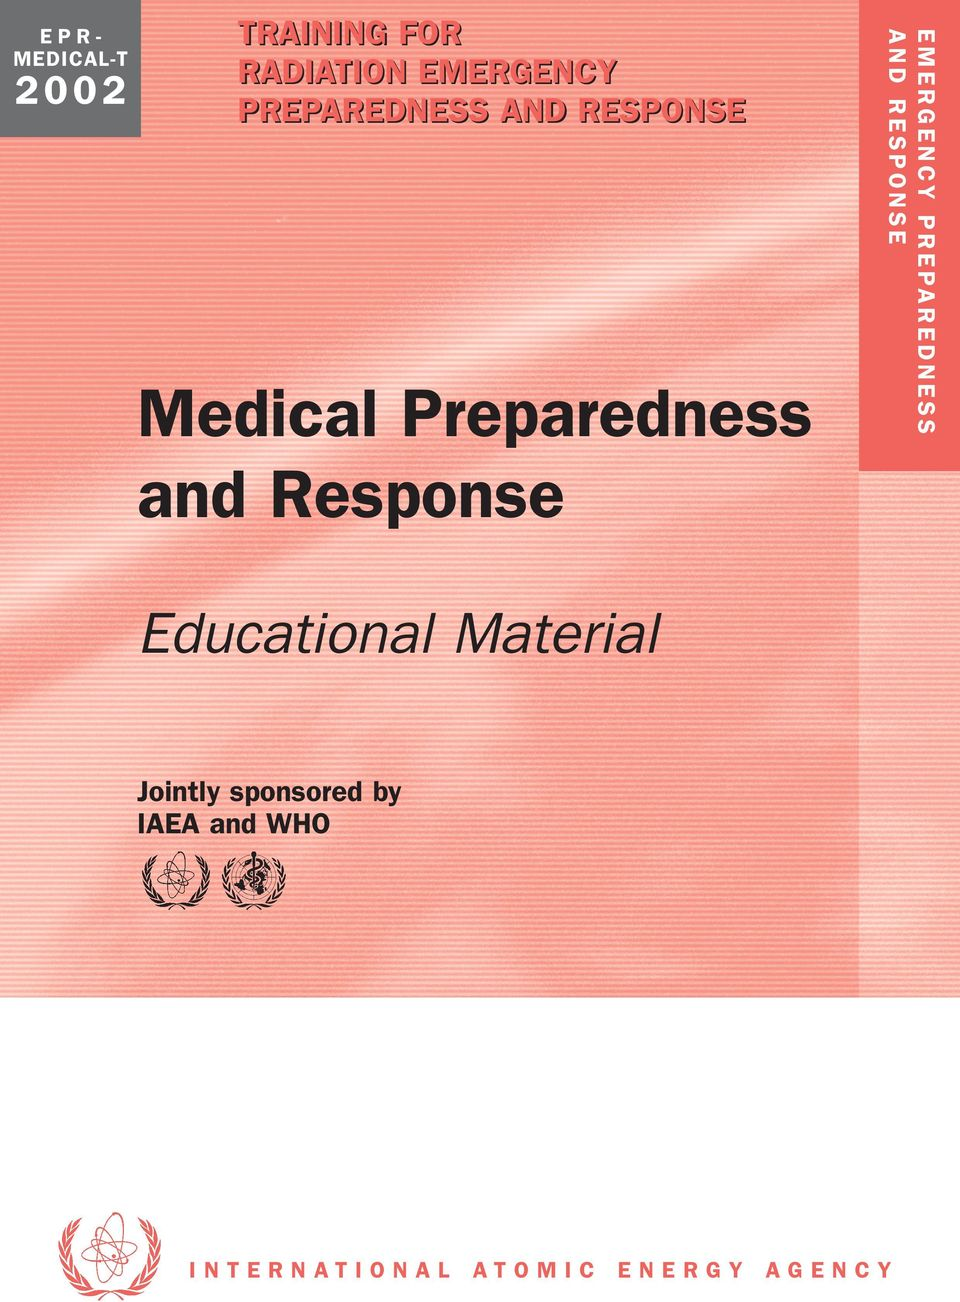 E D N E S S AND RESPONSE EPRMEDICAL-T Educational Material